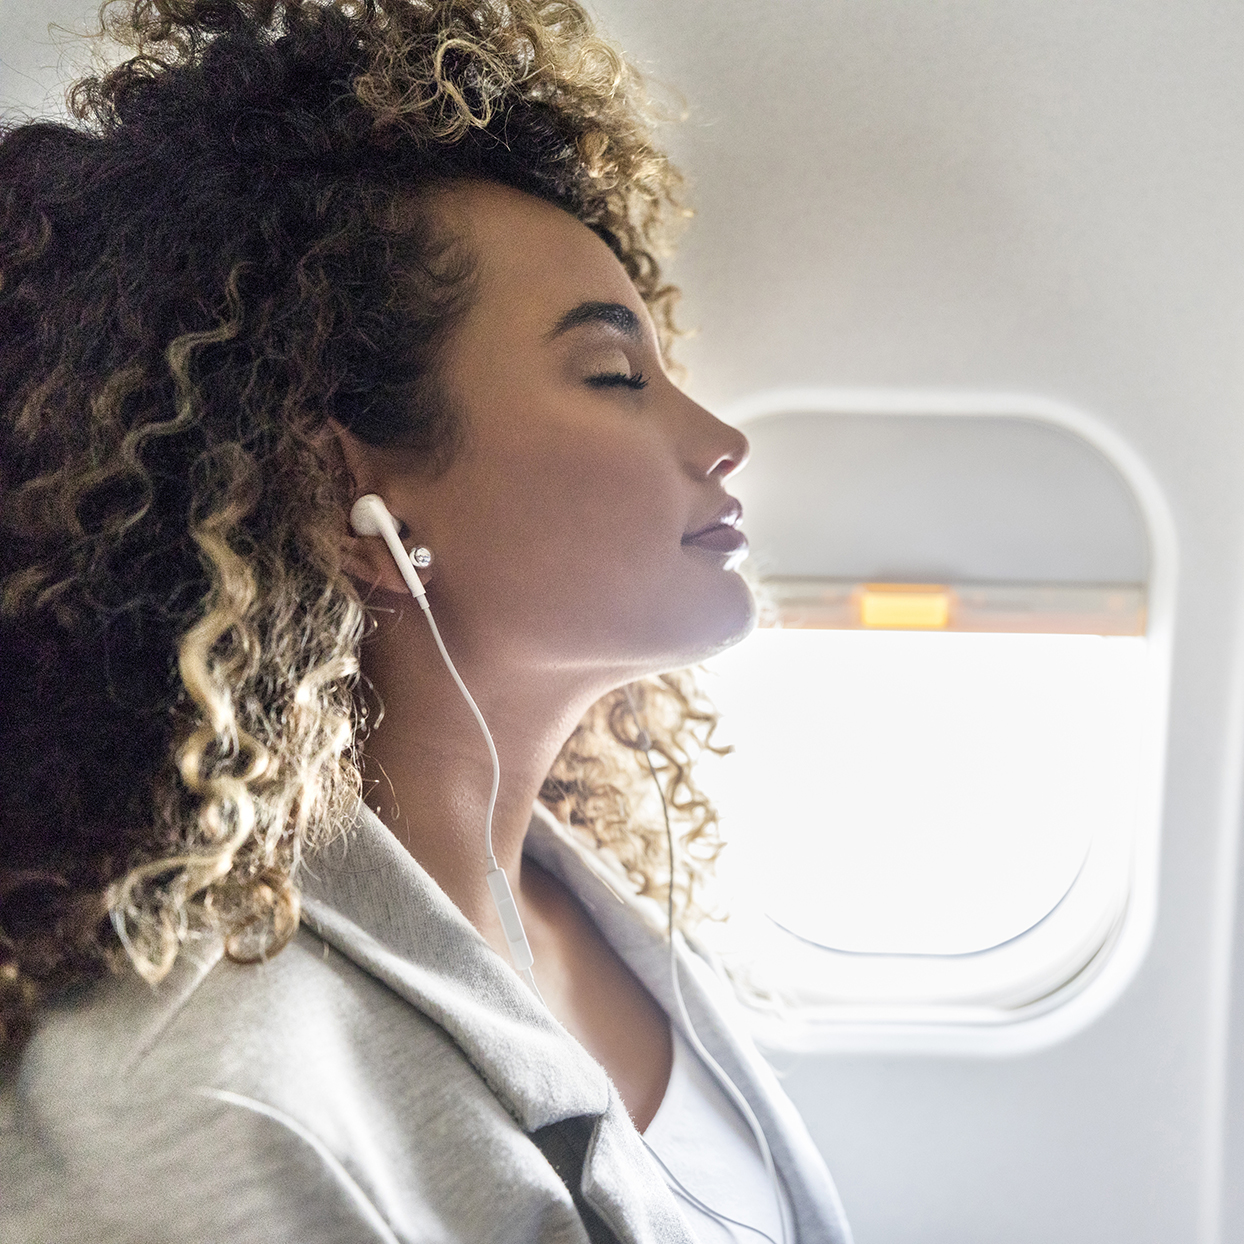 Attractive young woman closes her eyes while listening to music during a flight